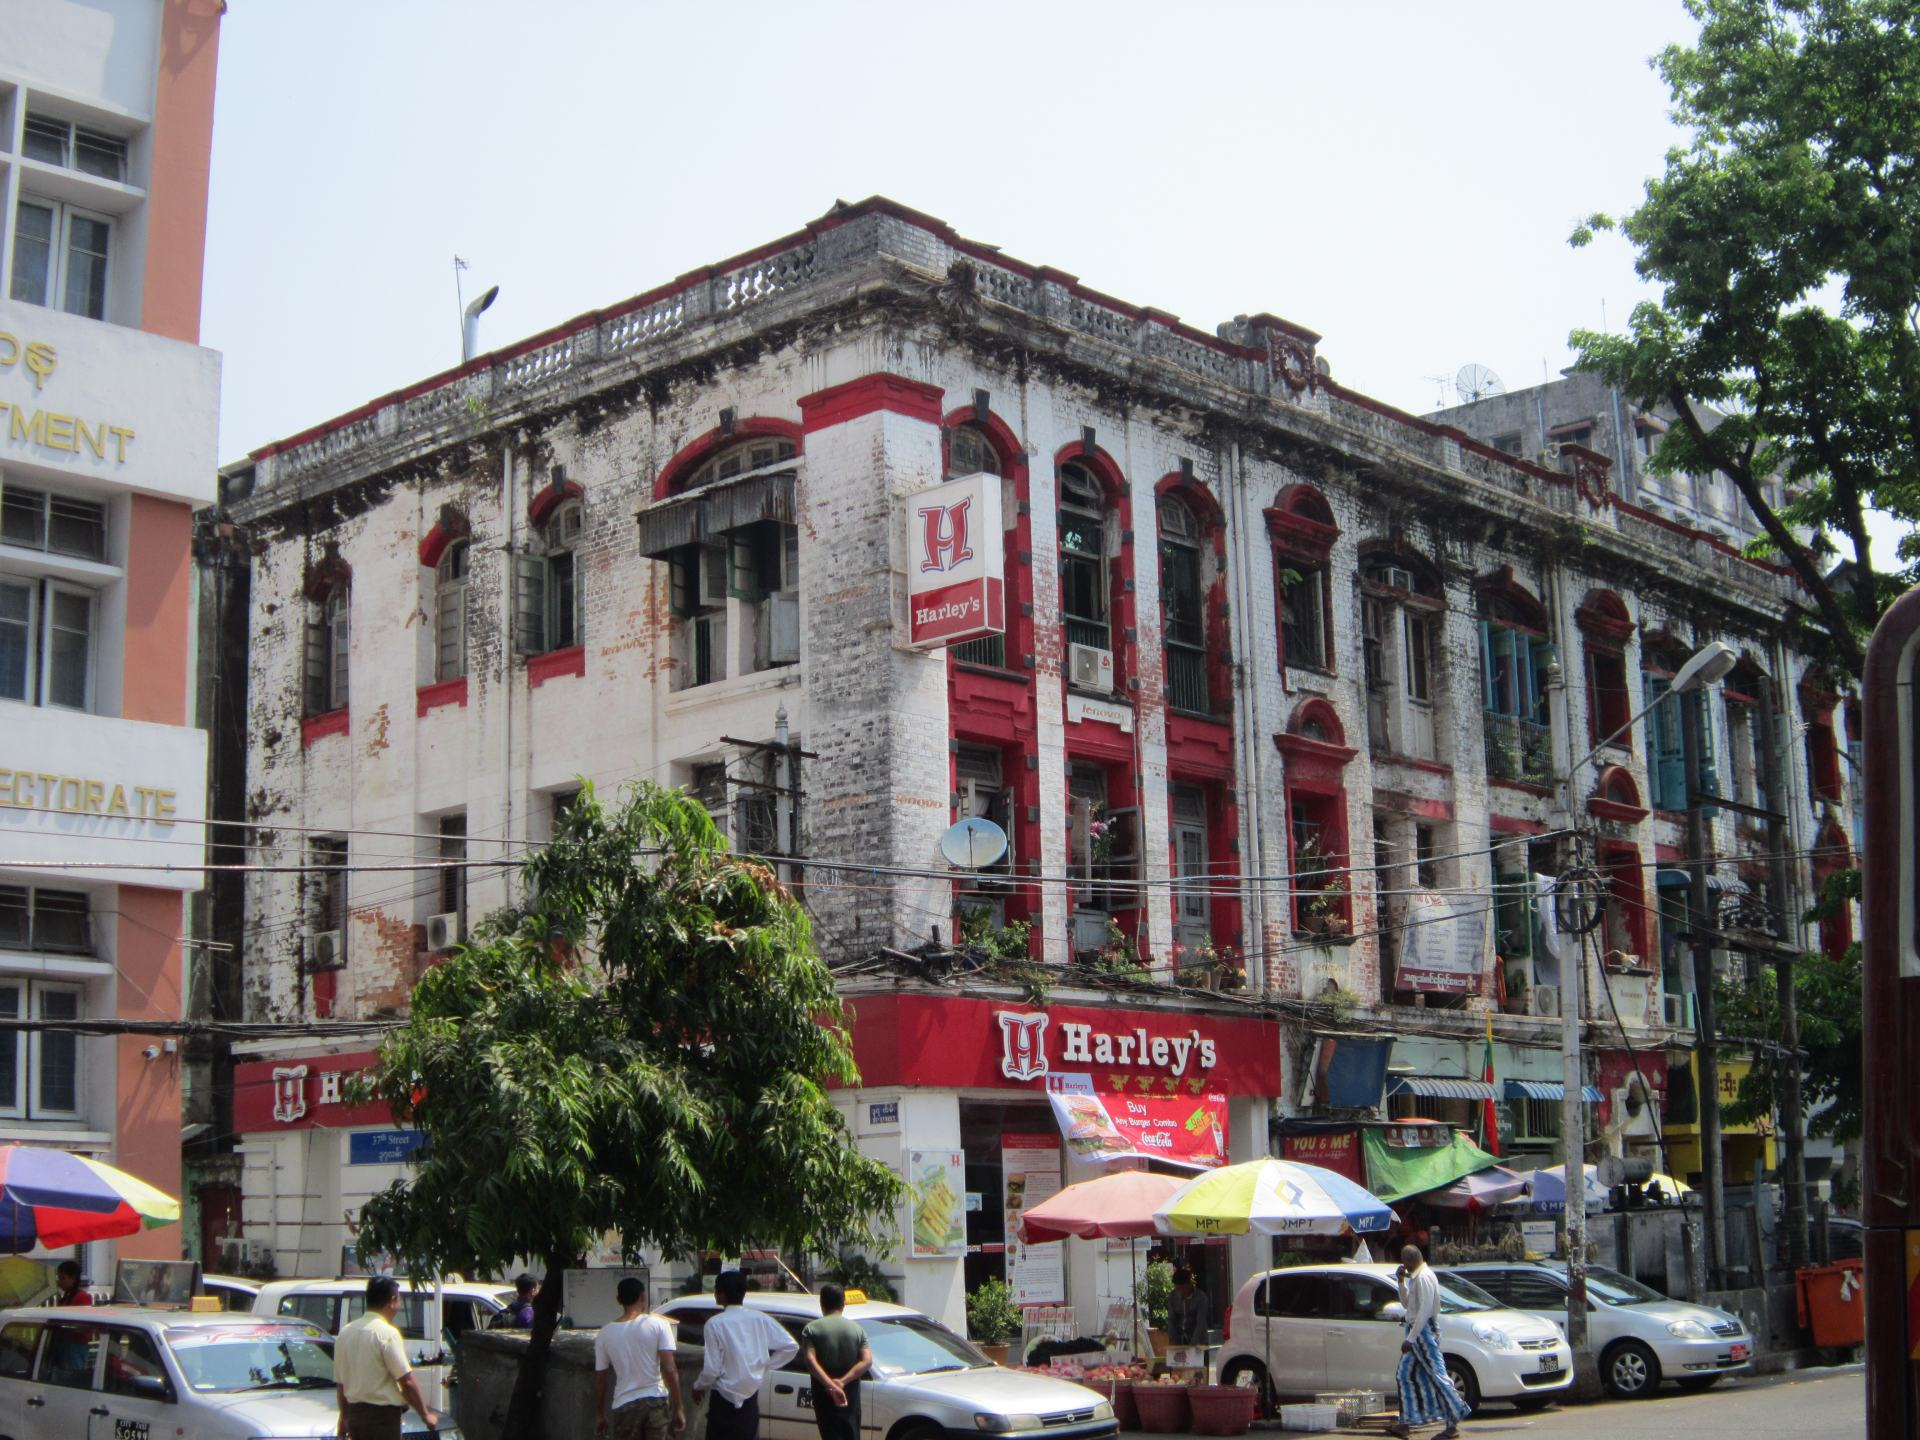 Colonial style buildings on the Yangon city streets